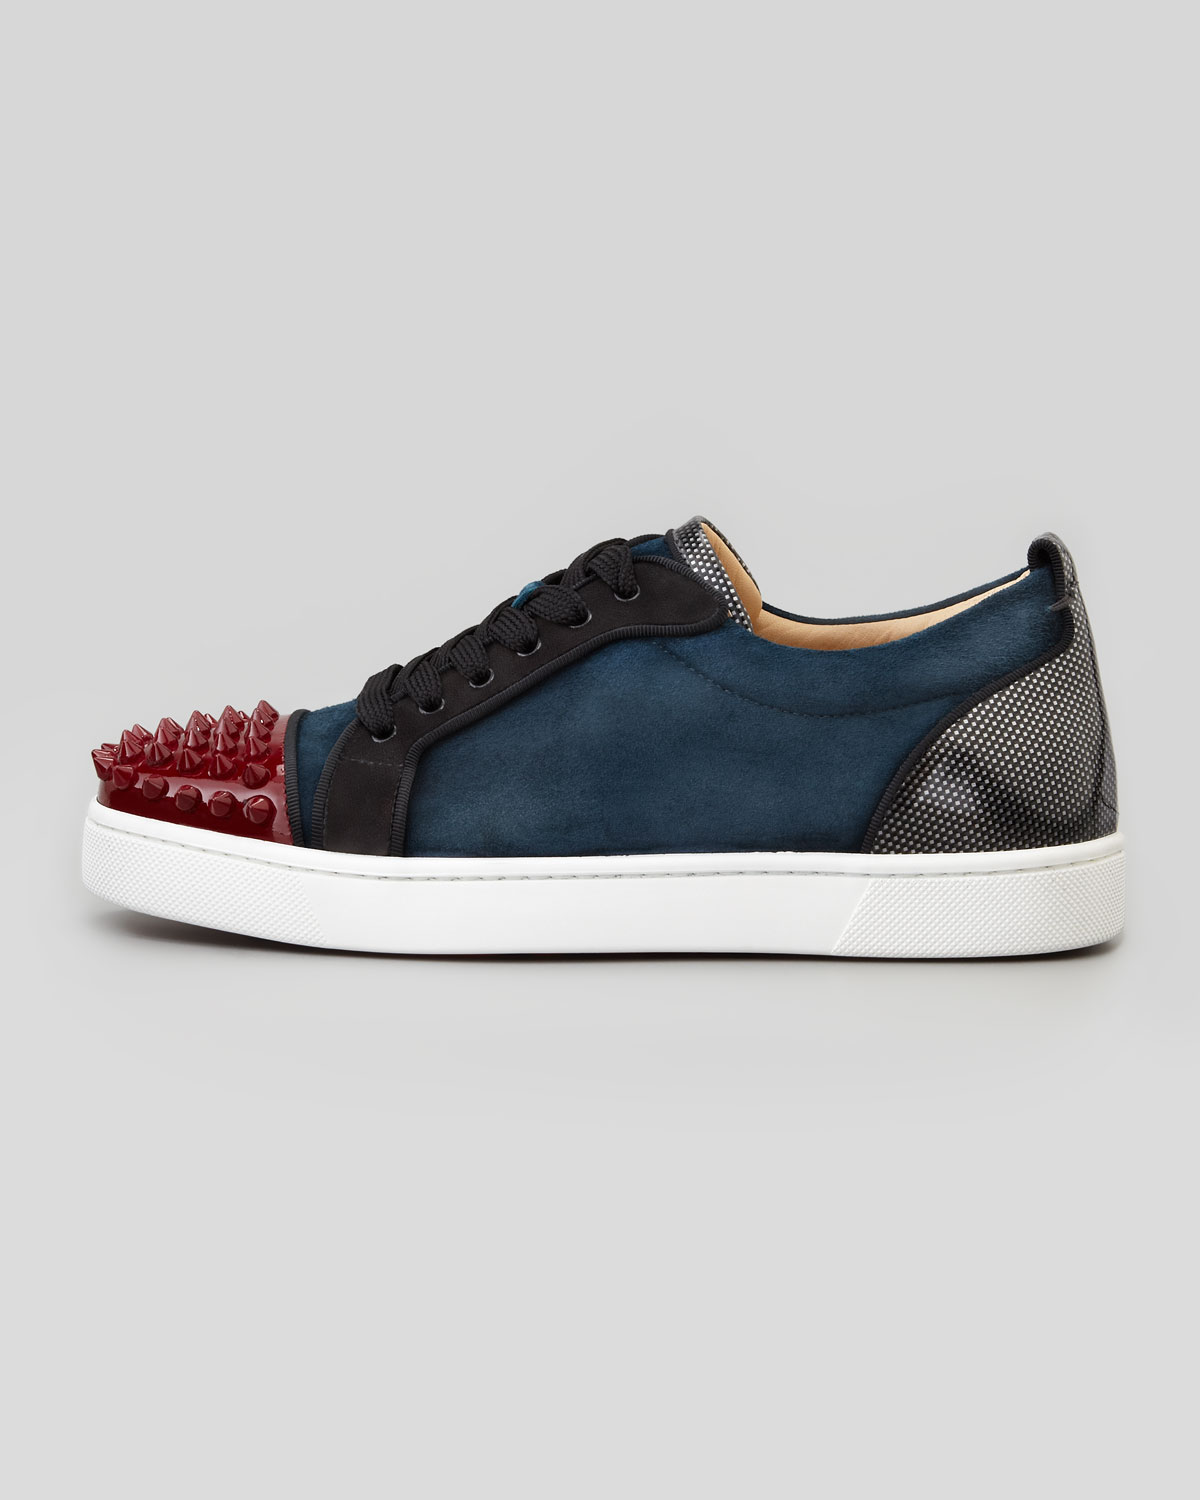 christian louboutin louis junior spikes low top sneaker